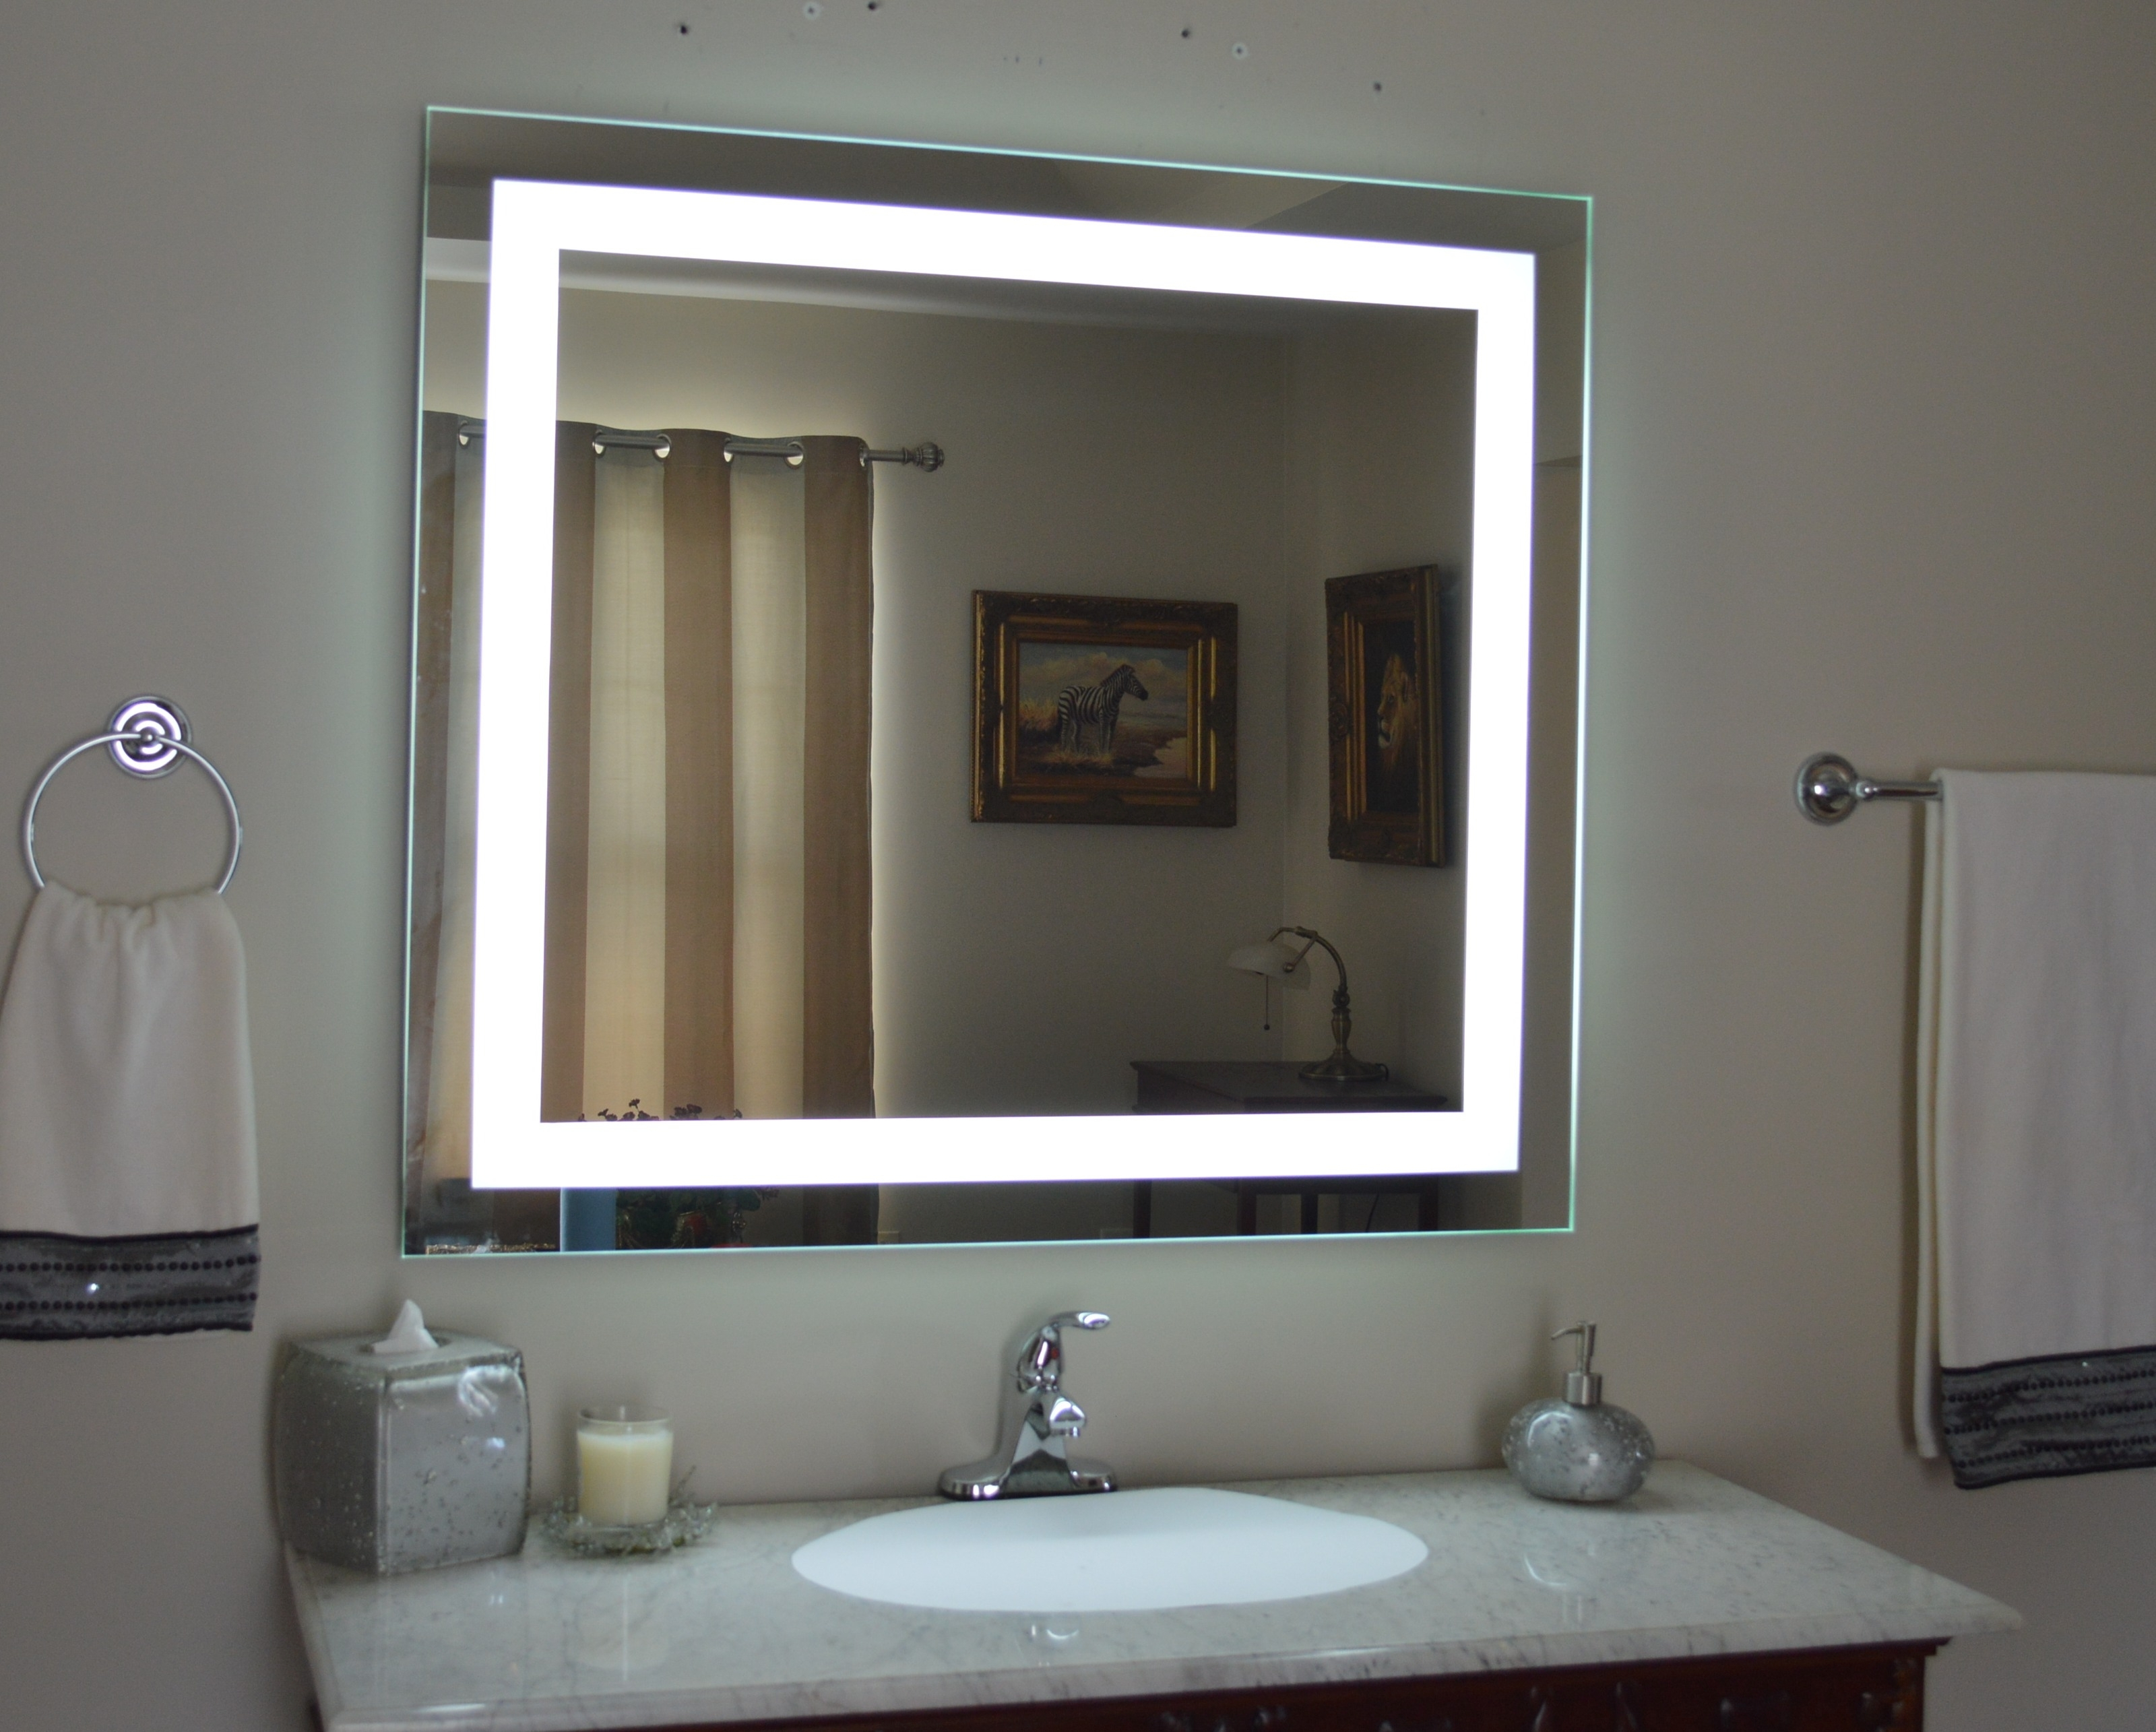 Lighted Wall Mounted Makeup Vanity Mirrors